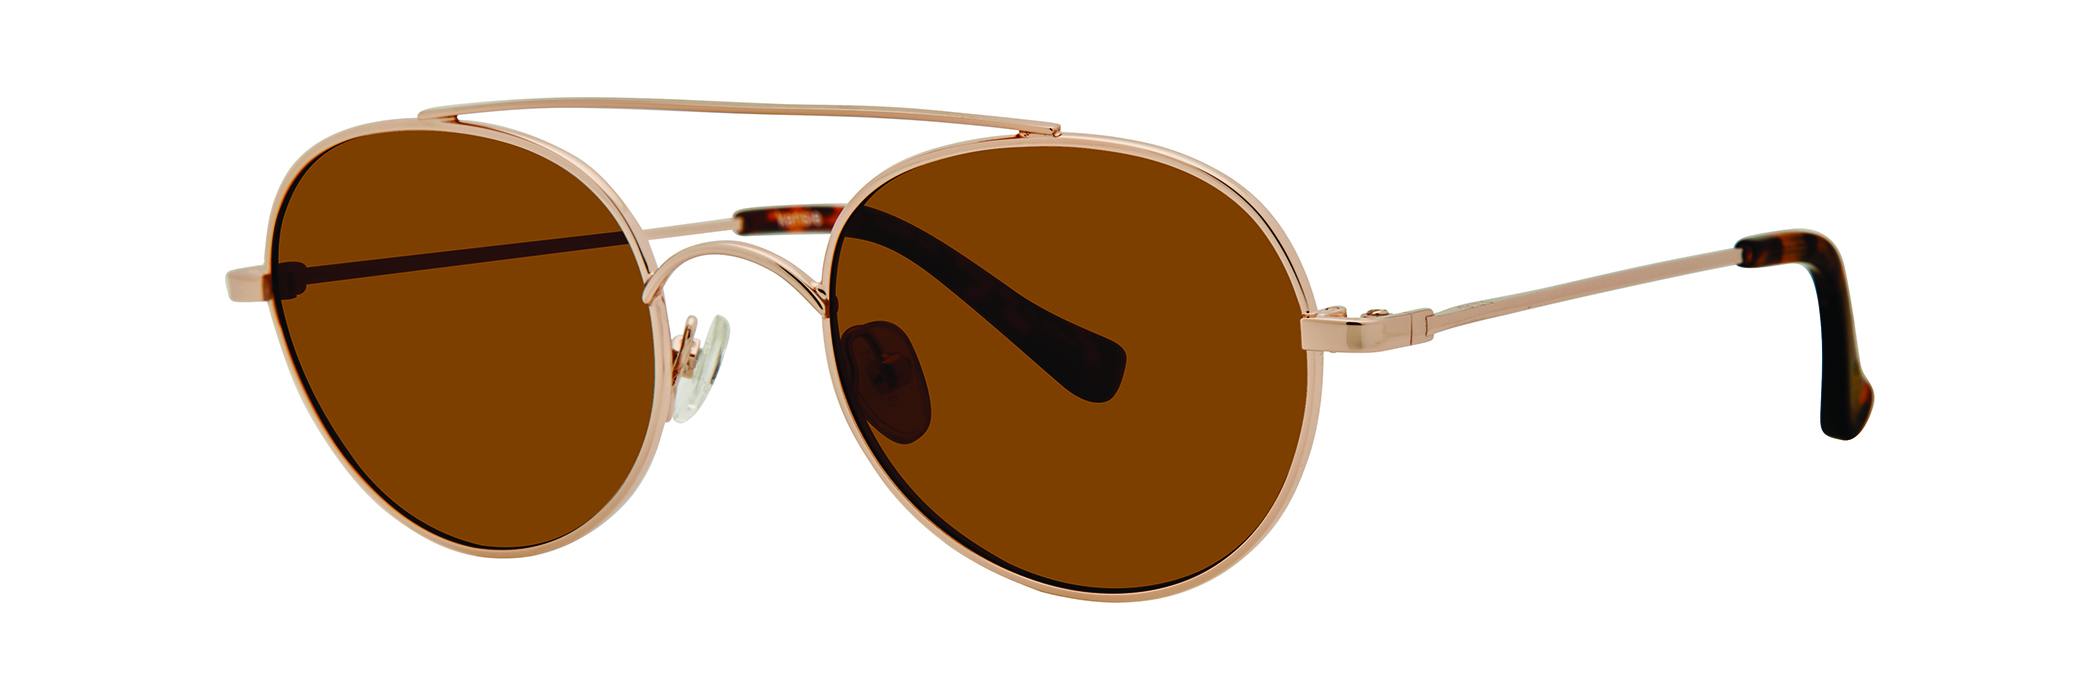 kensie 'inside out' // the hippest round metal style featuring a top bar and mirrored lenses